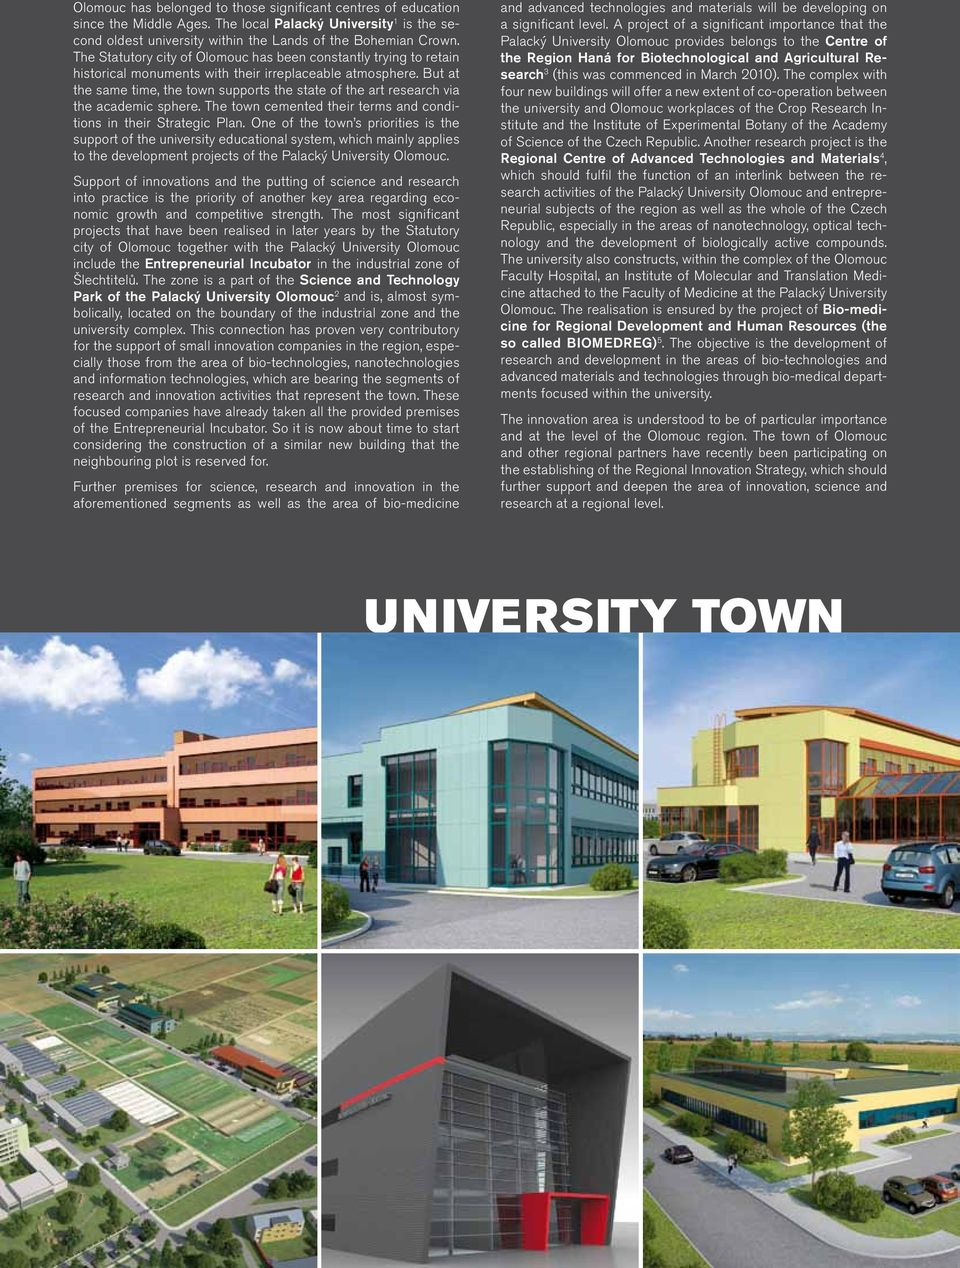 But at the same time, the town supports the state of the art research via the academic sphere. The town cemented their terms and conditions in their Strategic Plan.